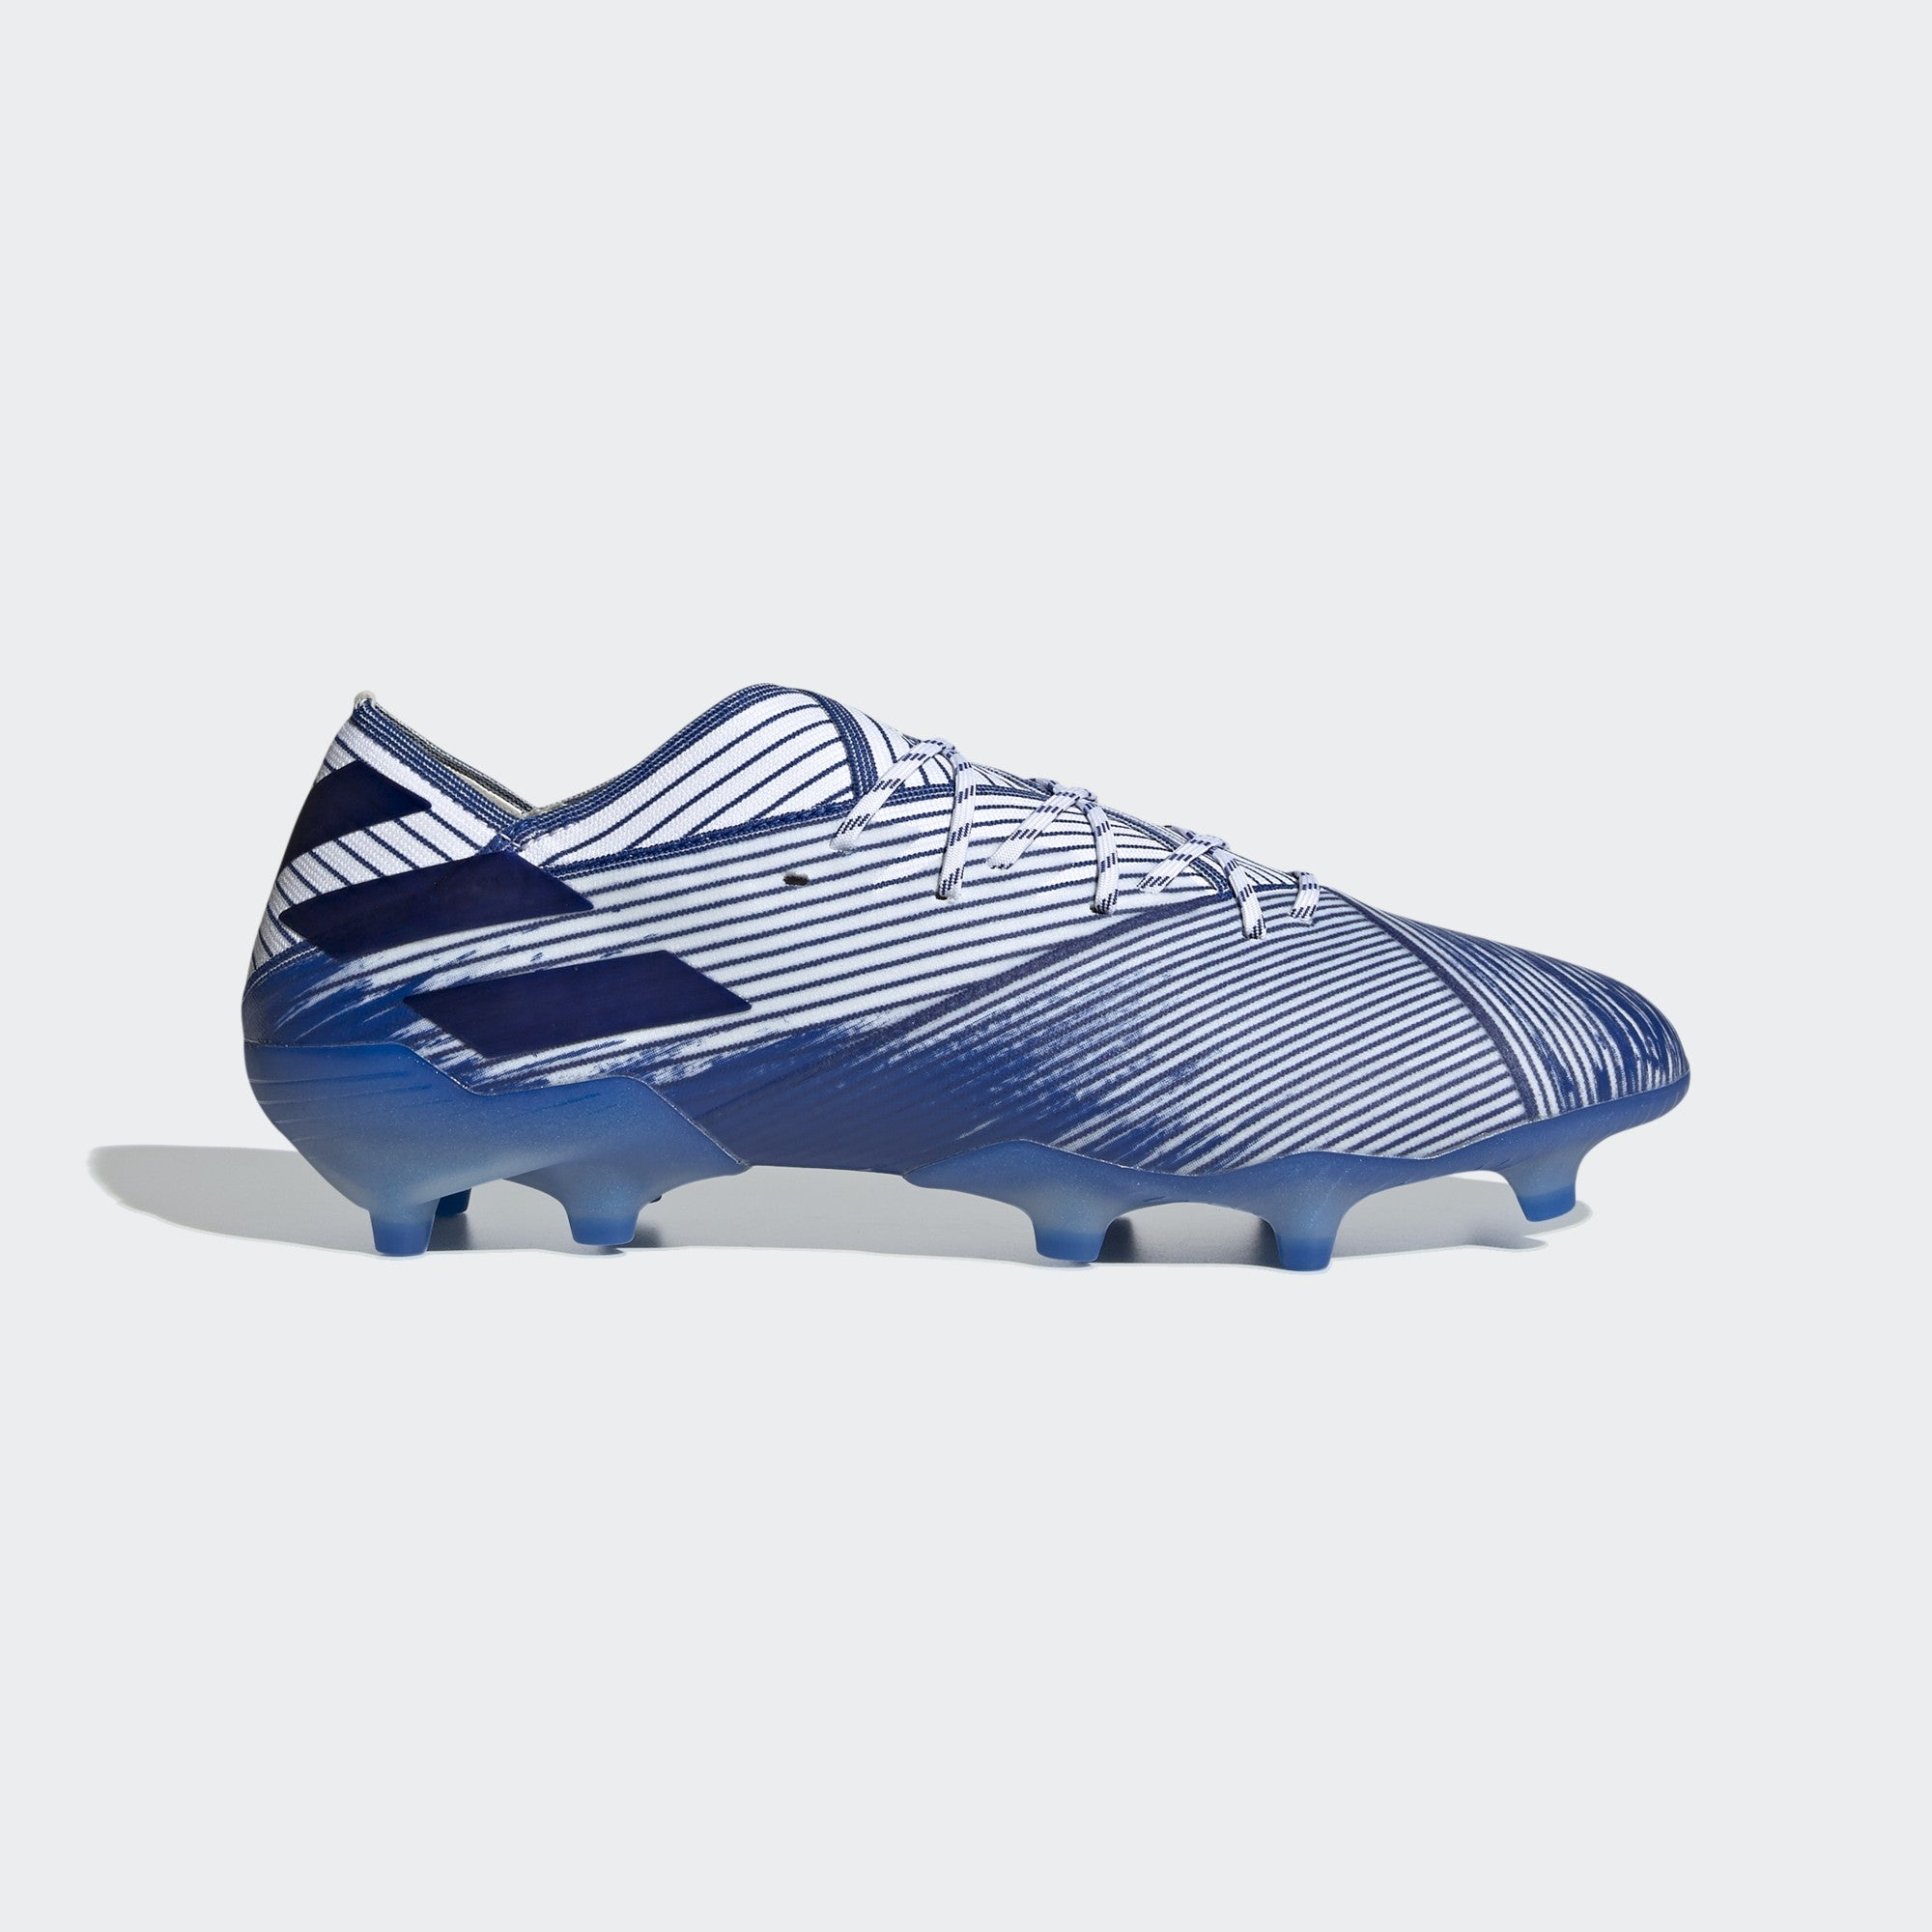 Nemeziz 19.1 FG Cleats